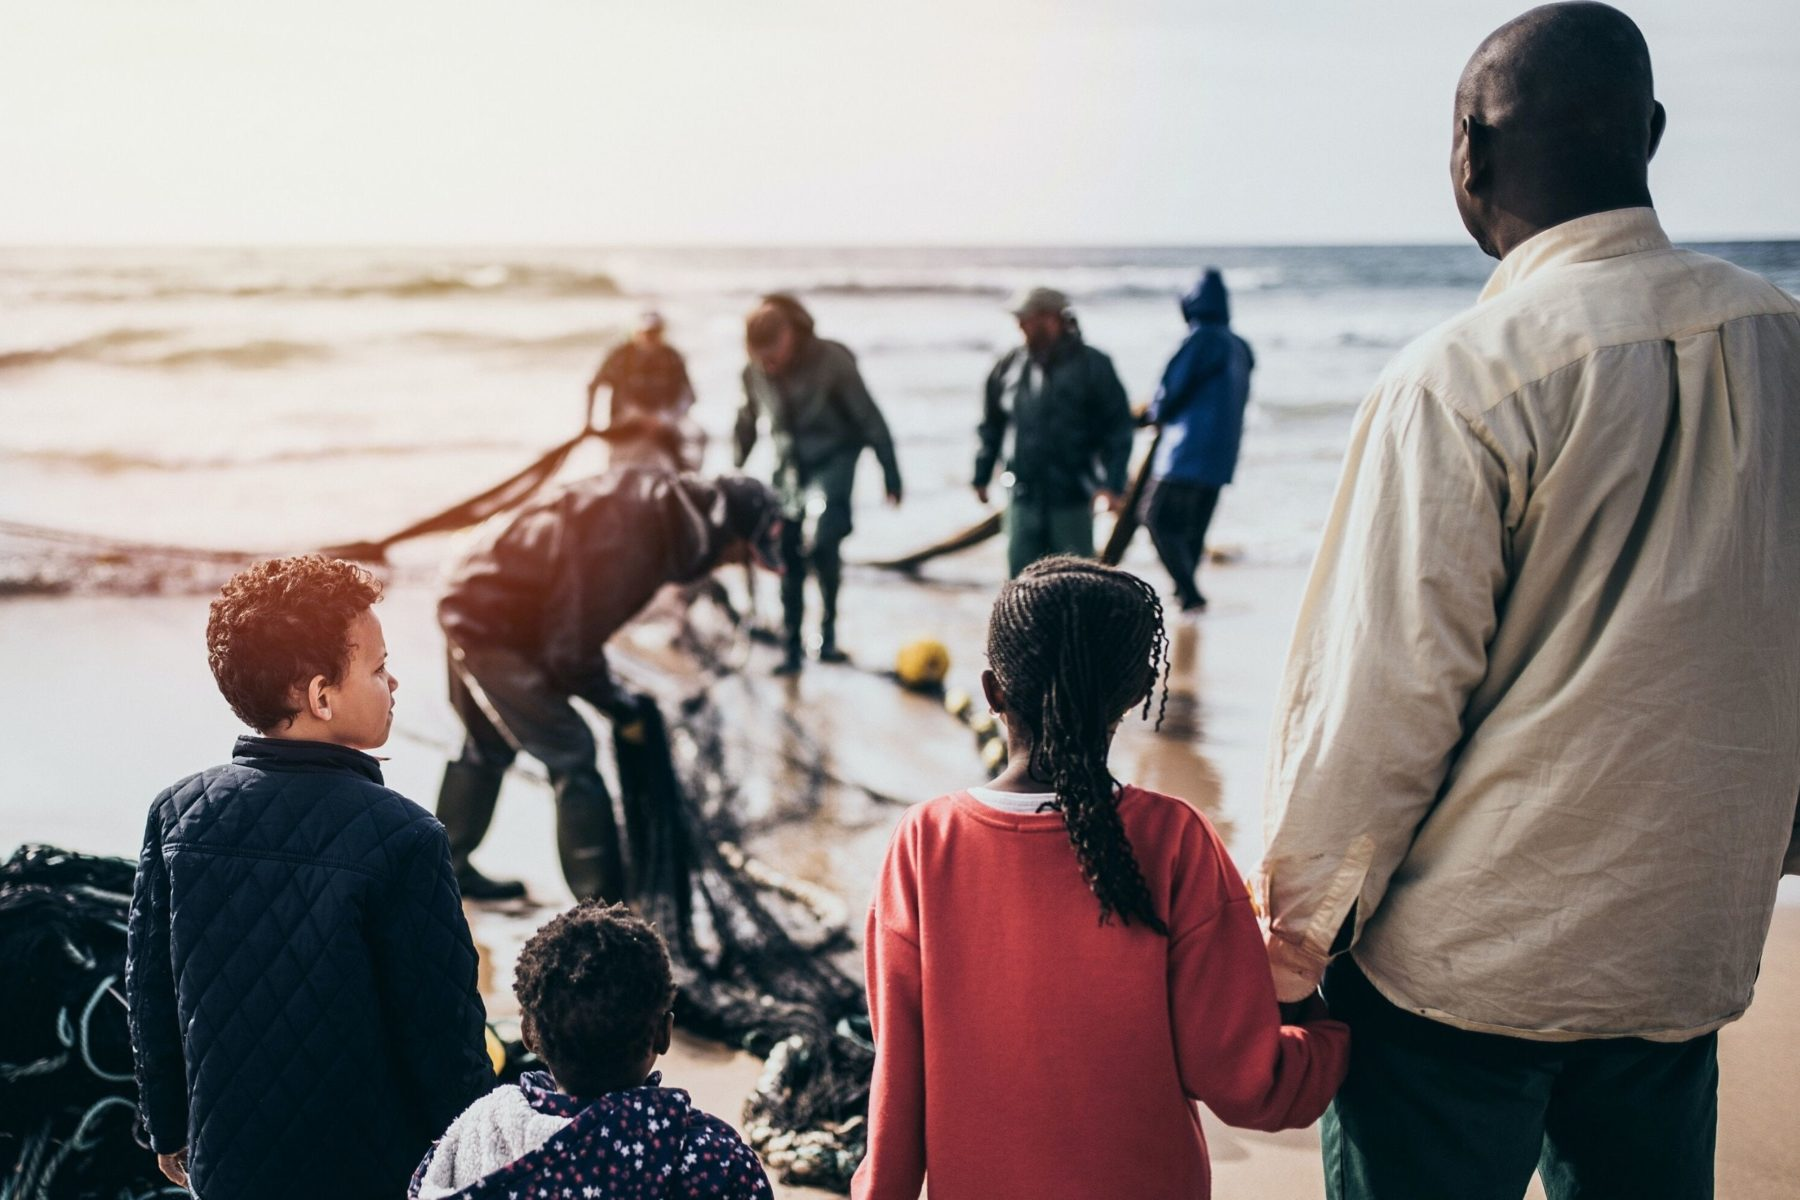 Refugees on a shoreline. One man and three children